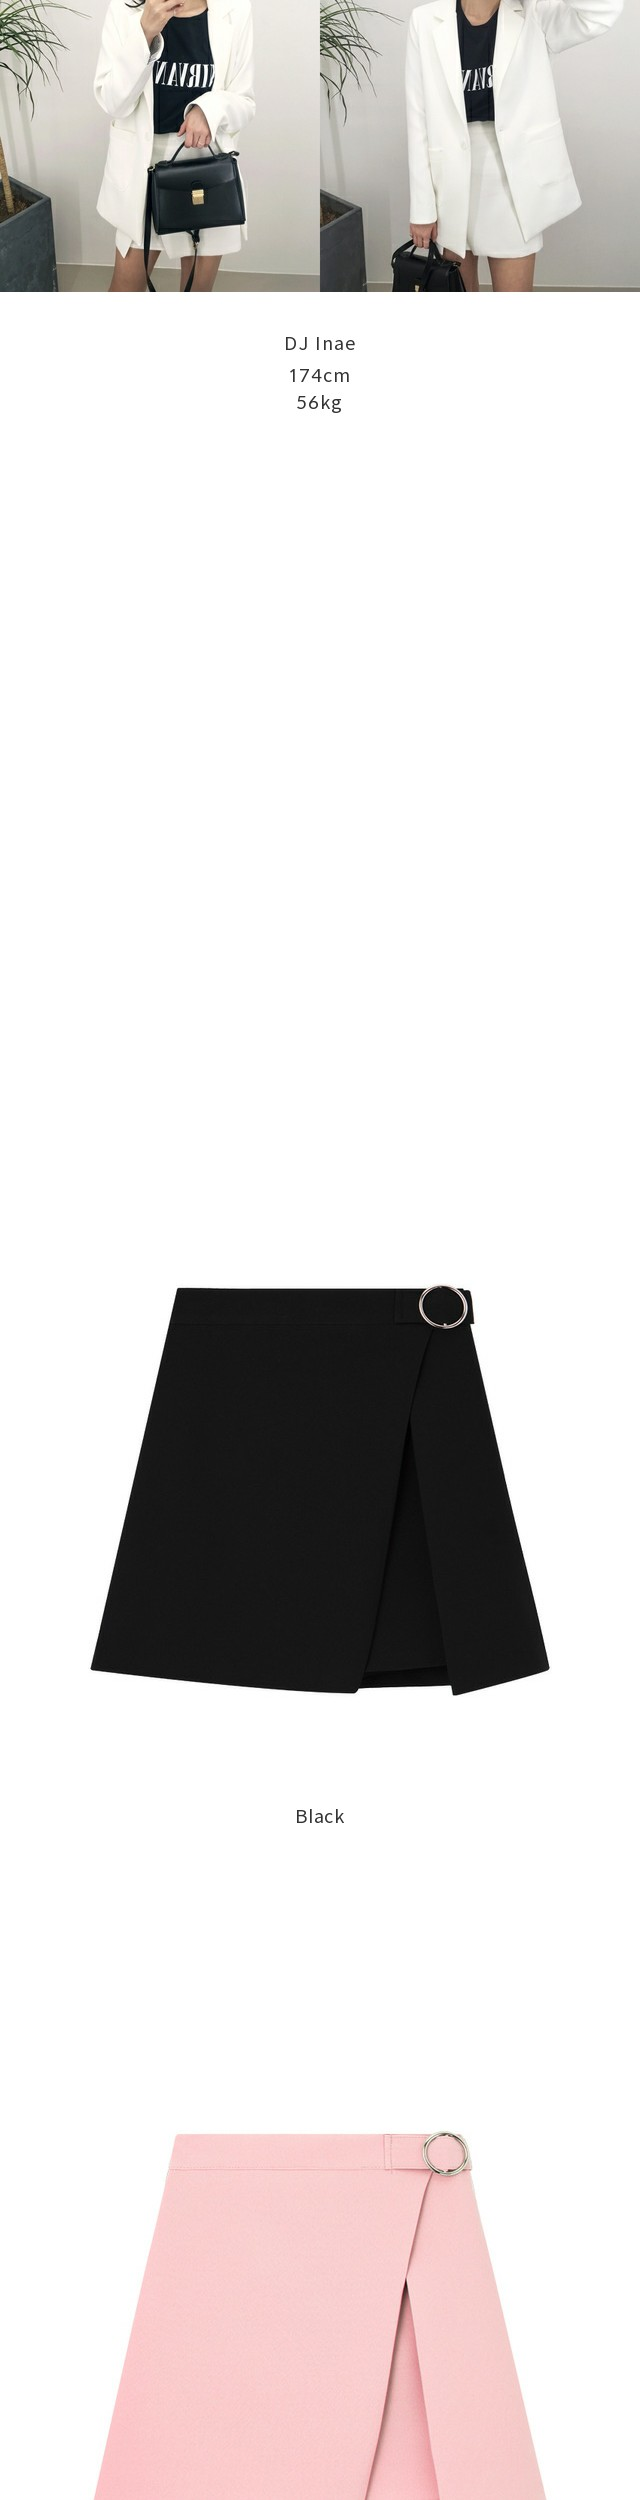 Sharett O-ring skirt